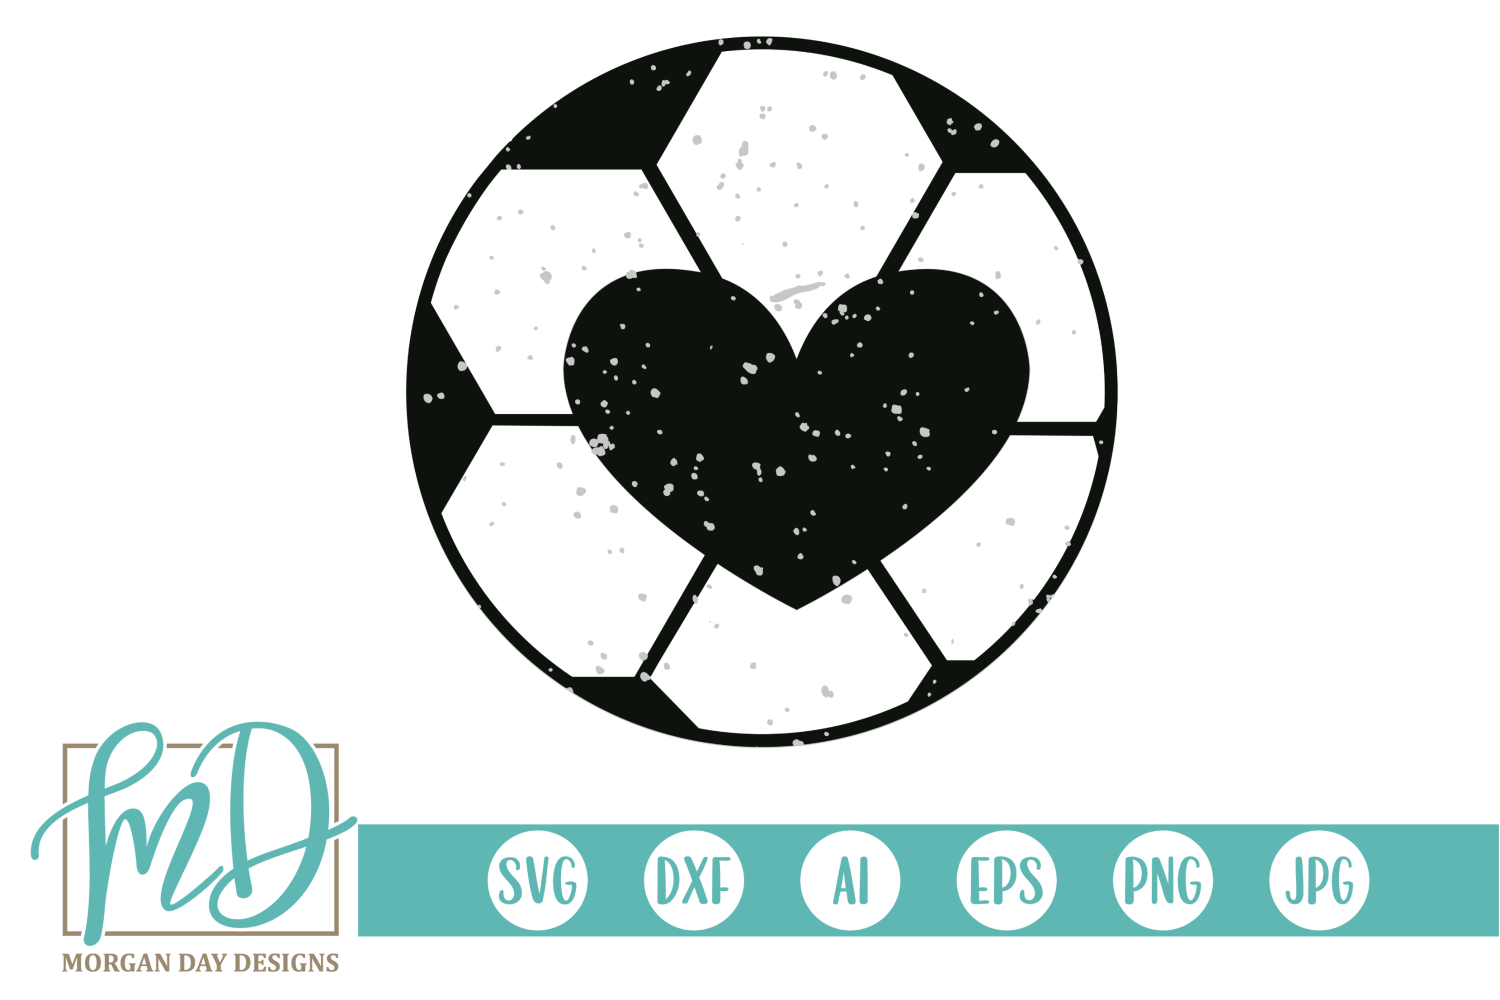 Grunge Soccer Ball Heart SVG, DXF, AI, EPS, PNG, JPEG example image 1